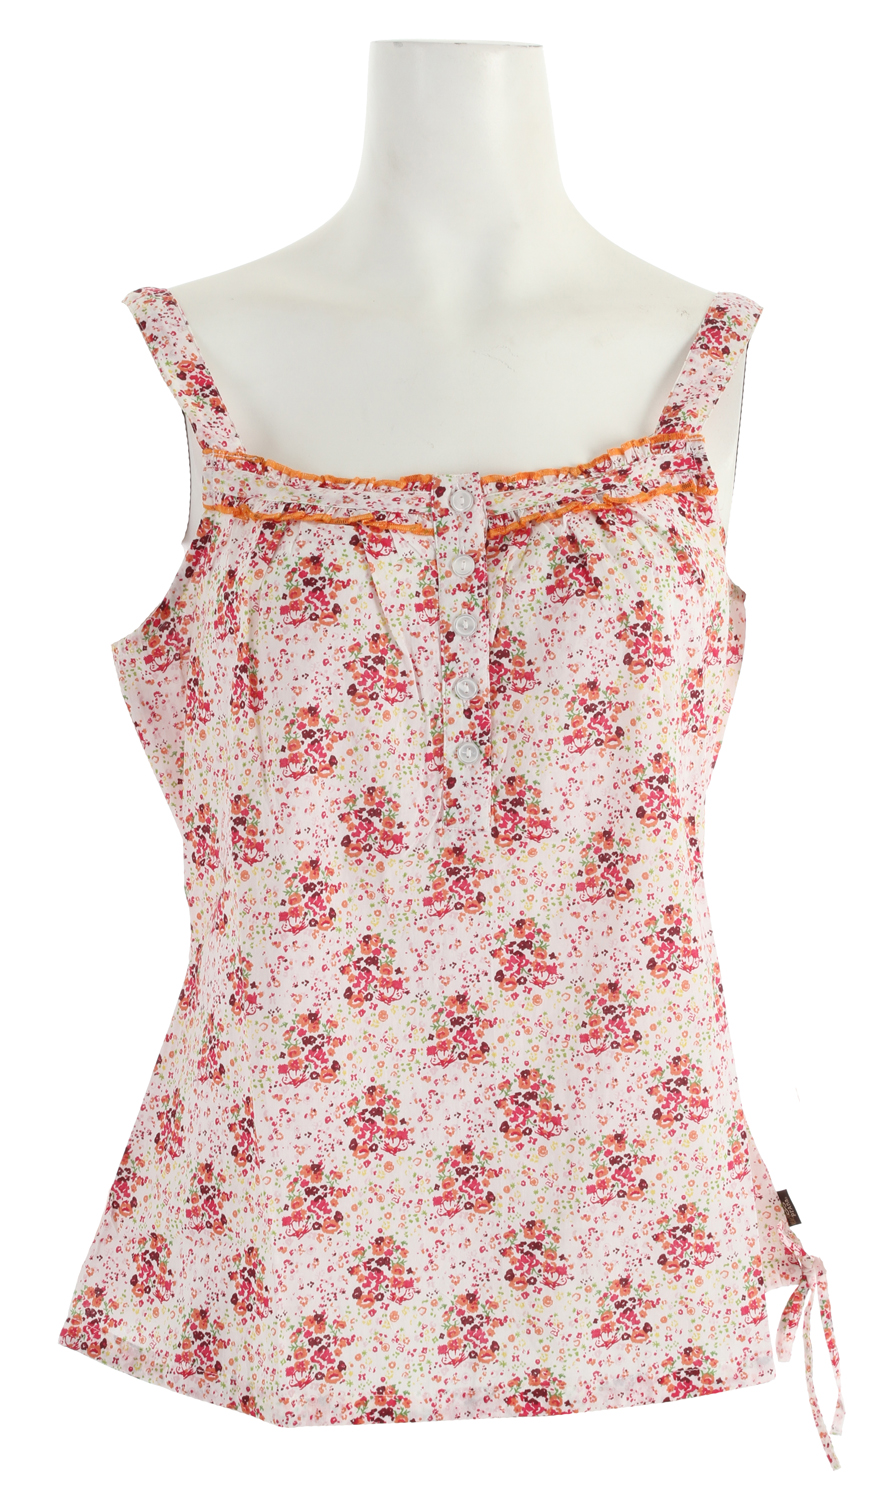 Surf If you like to lie on your back in a meadow and make up stories about passing clouds, this light, loose fitting, and breezy tank top is for you.Key Features of the Prana Mary Jane Tank Top: Tank top in light, breezy voile Loose fitting with elasticated hem All-over floral print 100 Cotton - $19.95